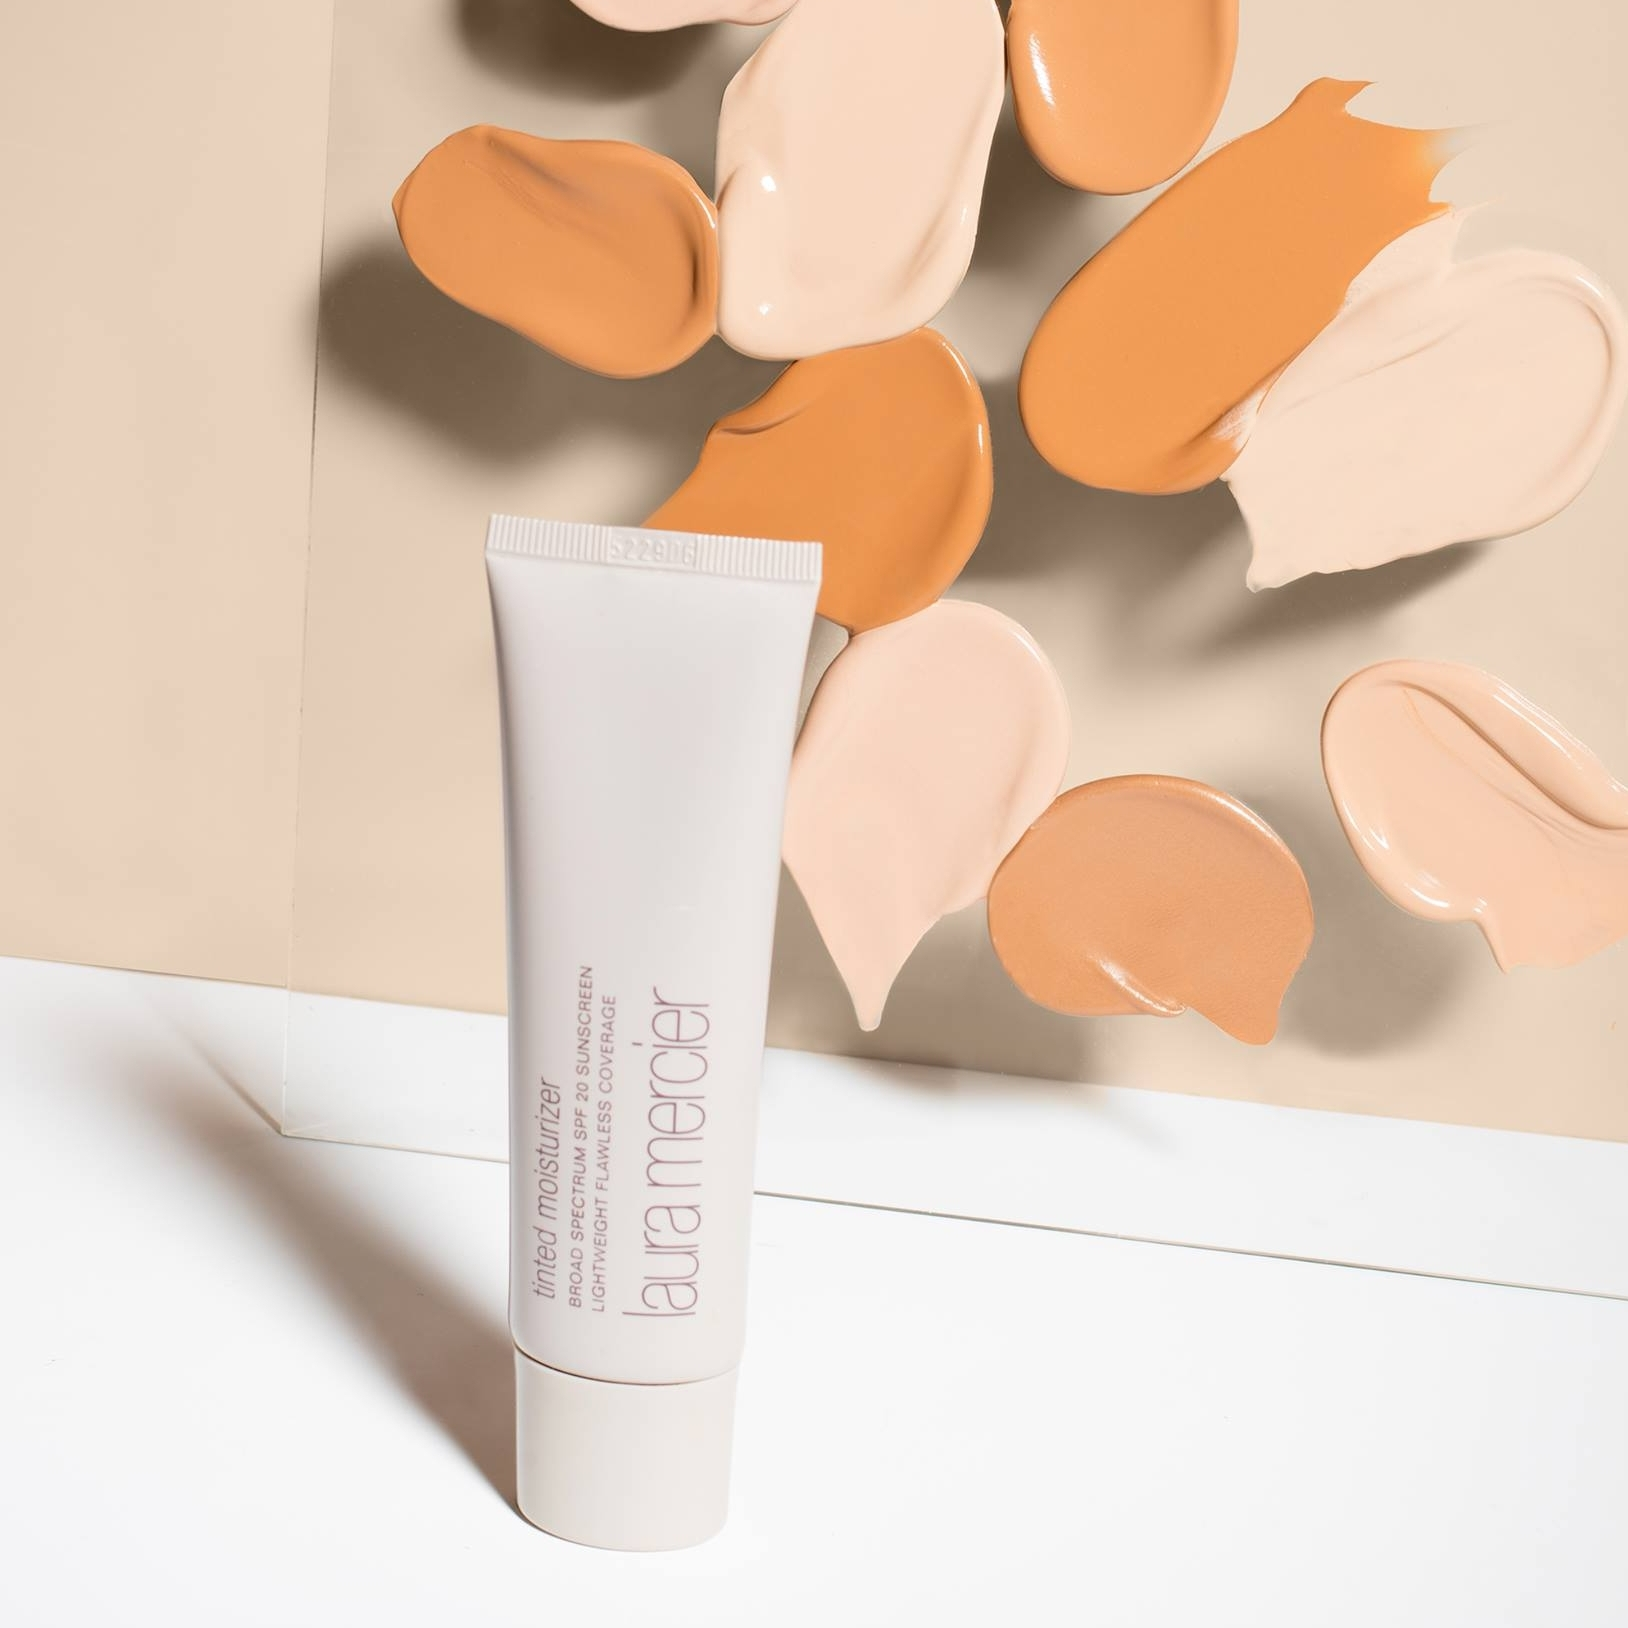 LM_Tinted-Moisturizer-with-swatches.jpg